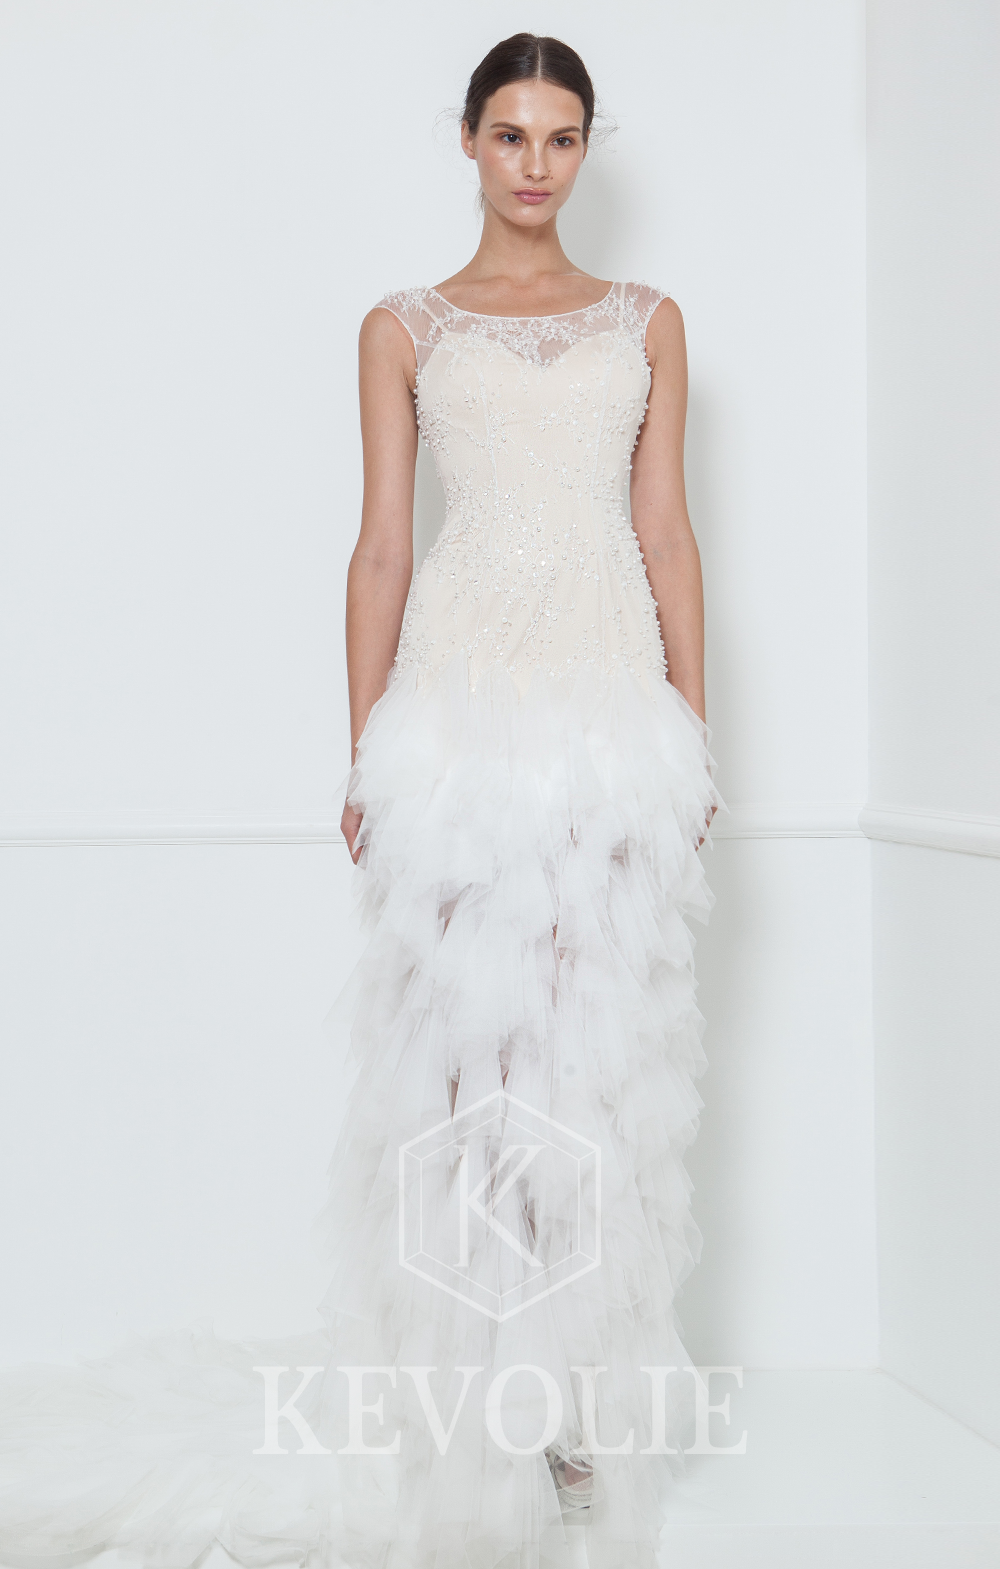 BRIDAL COLLECTION 2015-LOOK 3